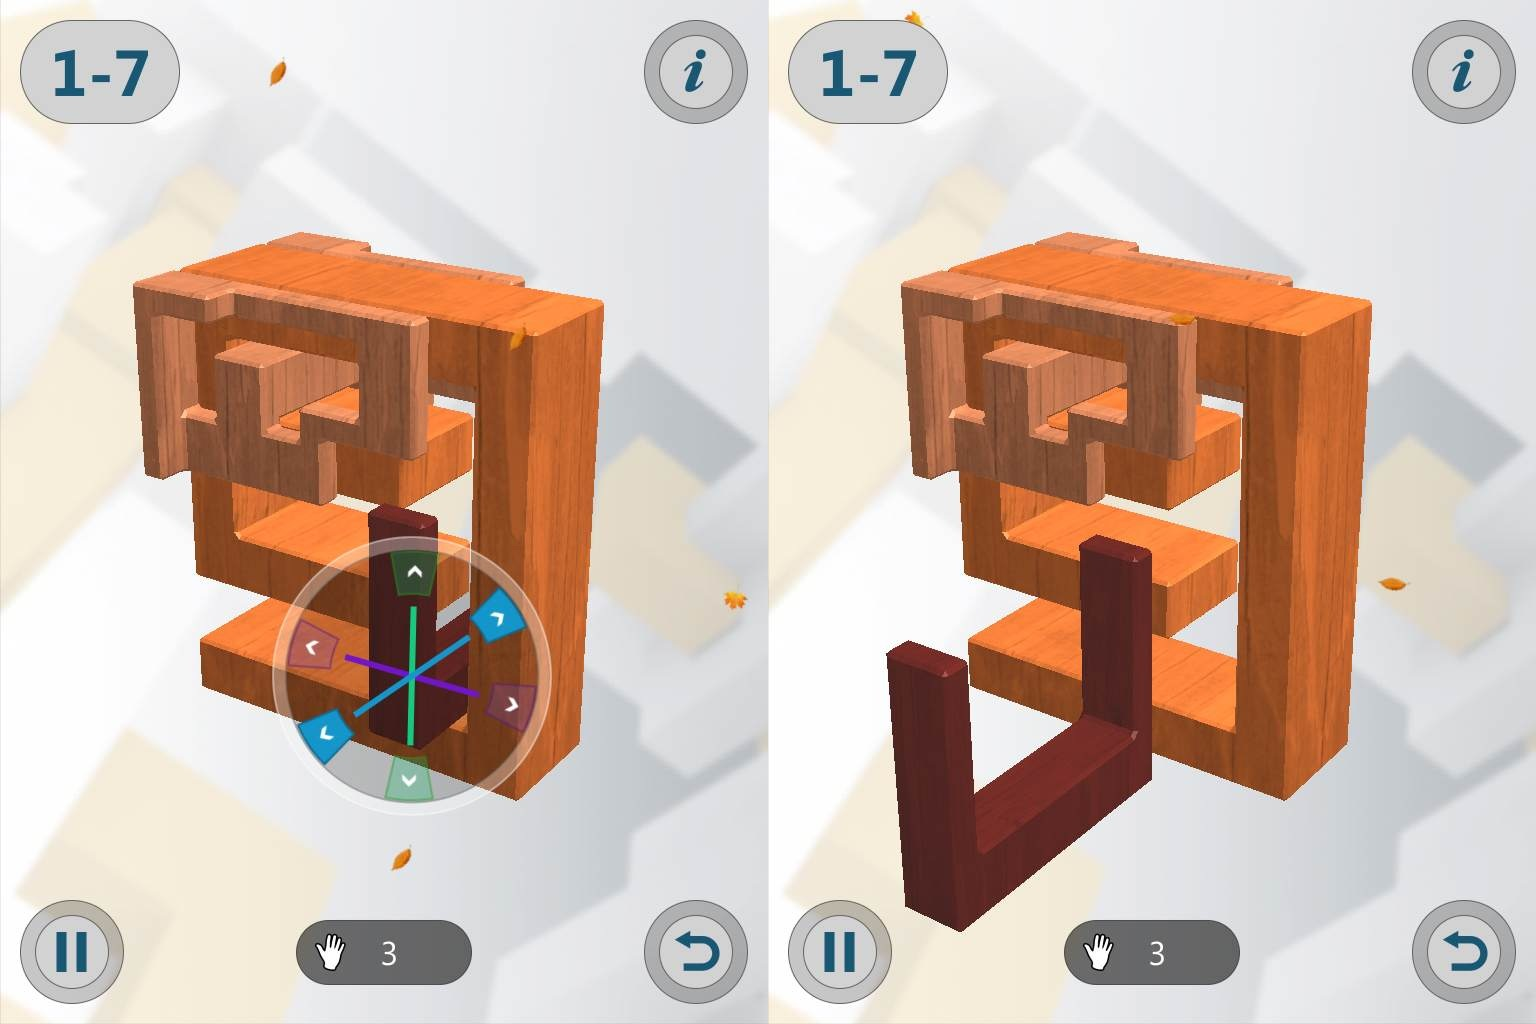 Interlocked Casual Games for Android